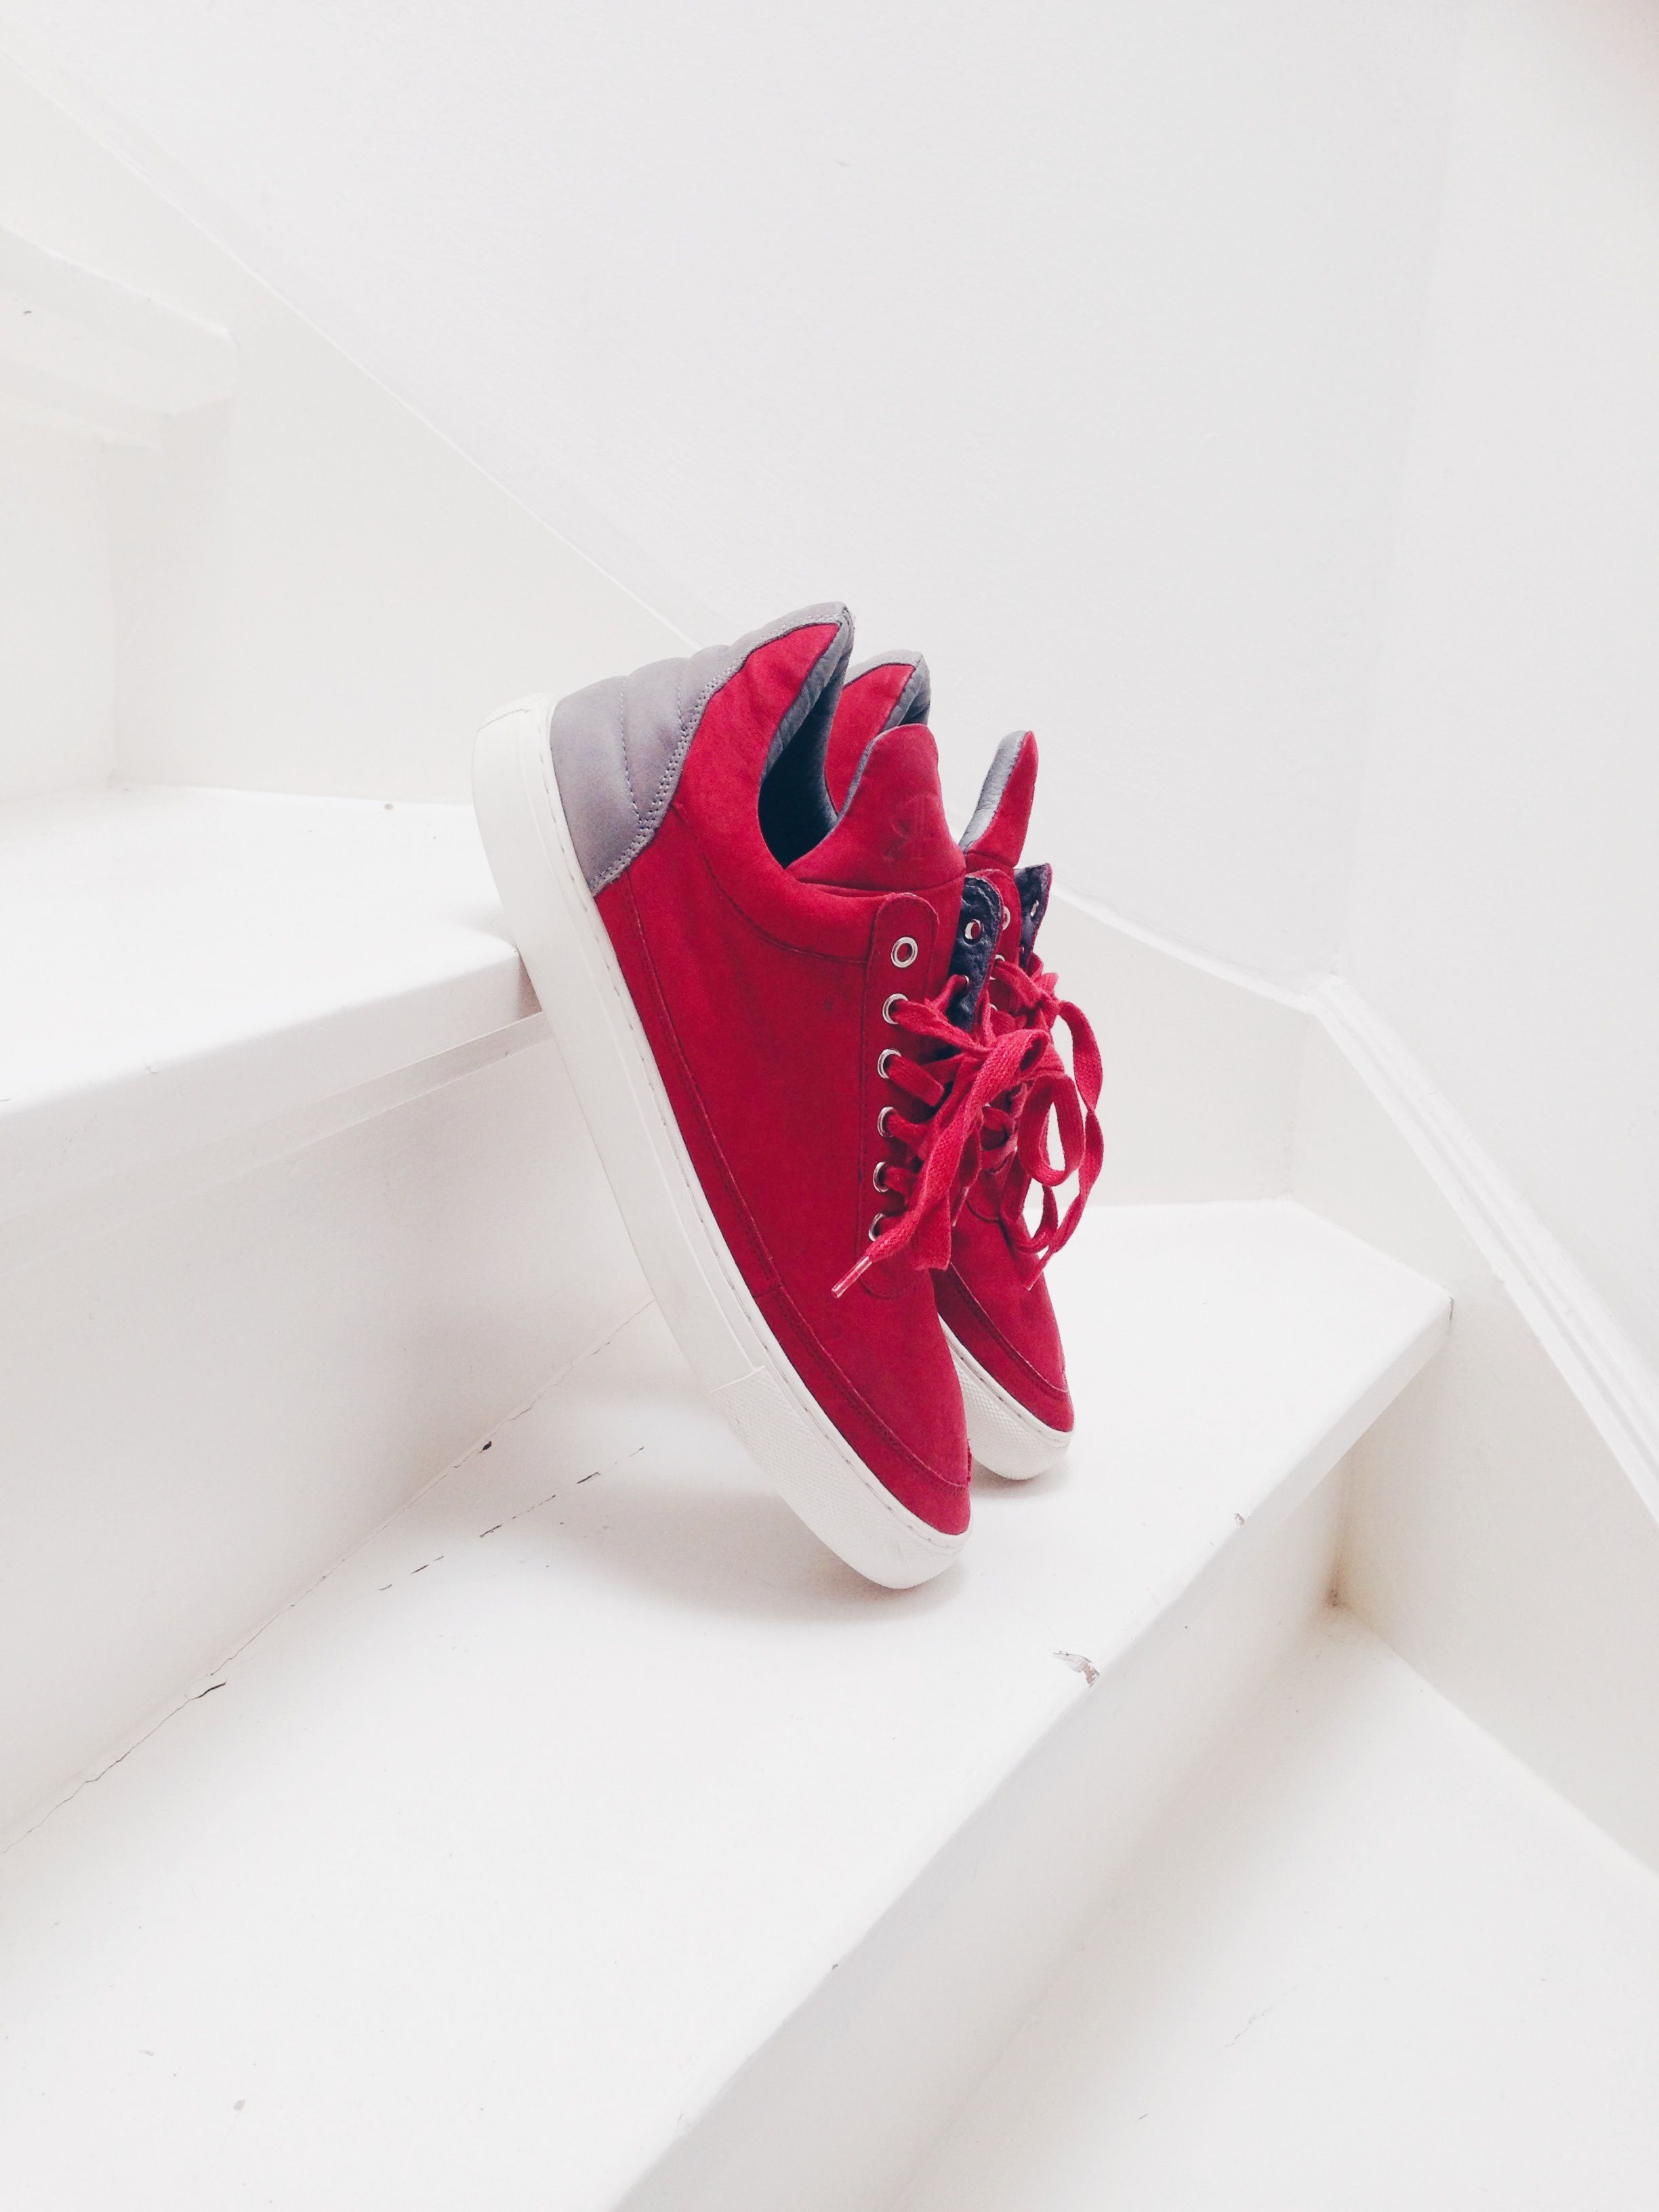 First collabo pair between #Fillingpieces and #Ronniefieg. #kith #resukshot